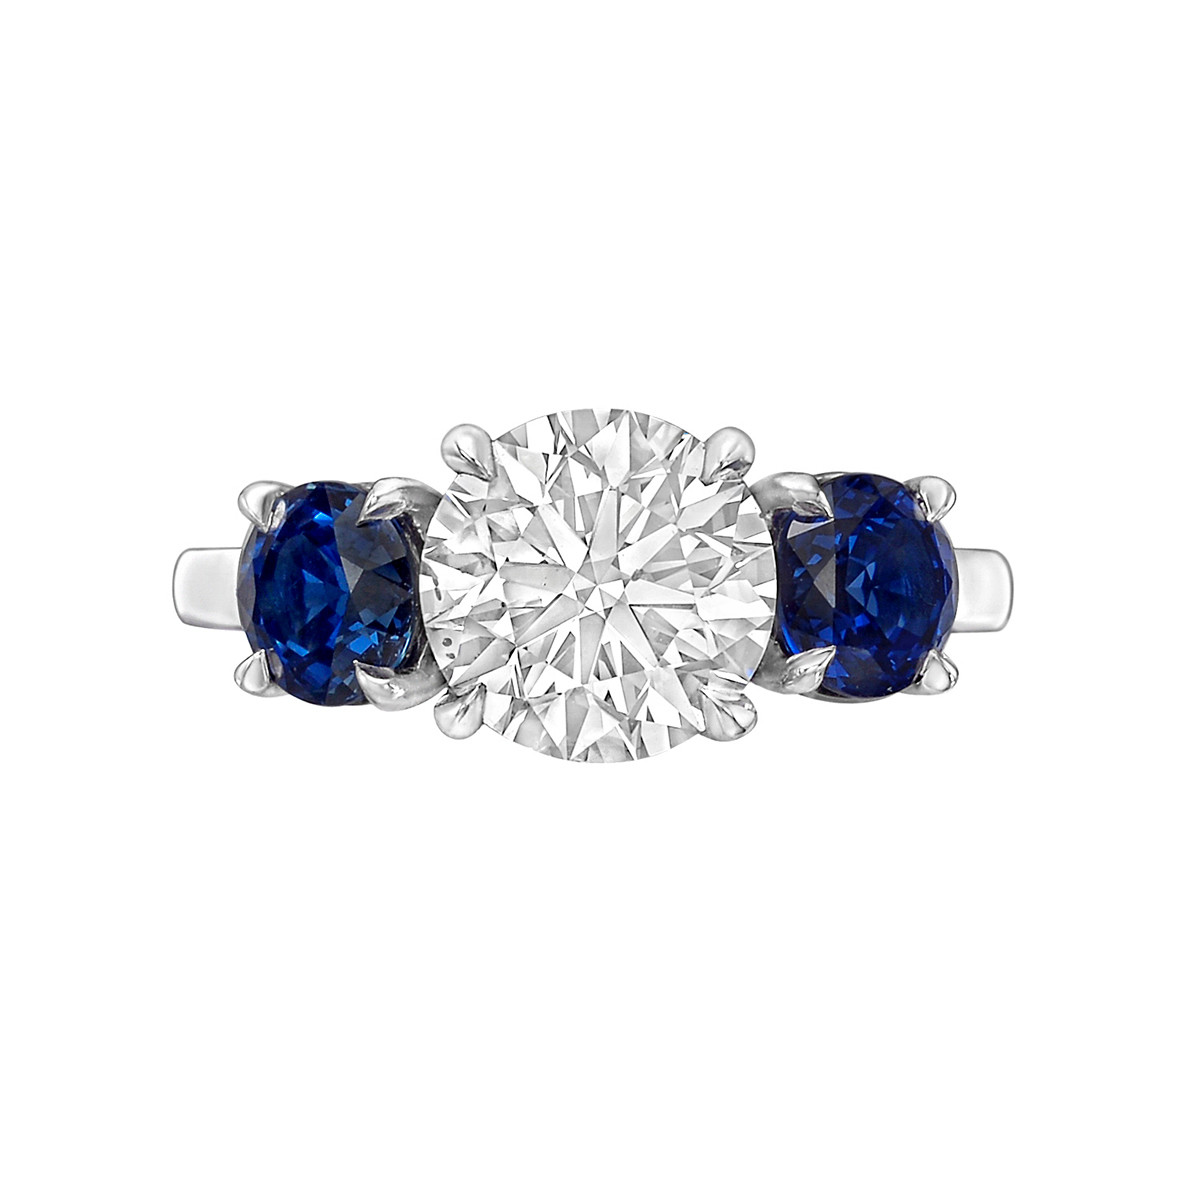 2.01ct Round Diamond & Sapphire Three-Stone Ring